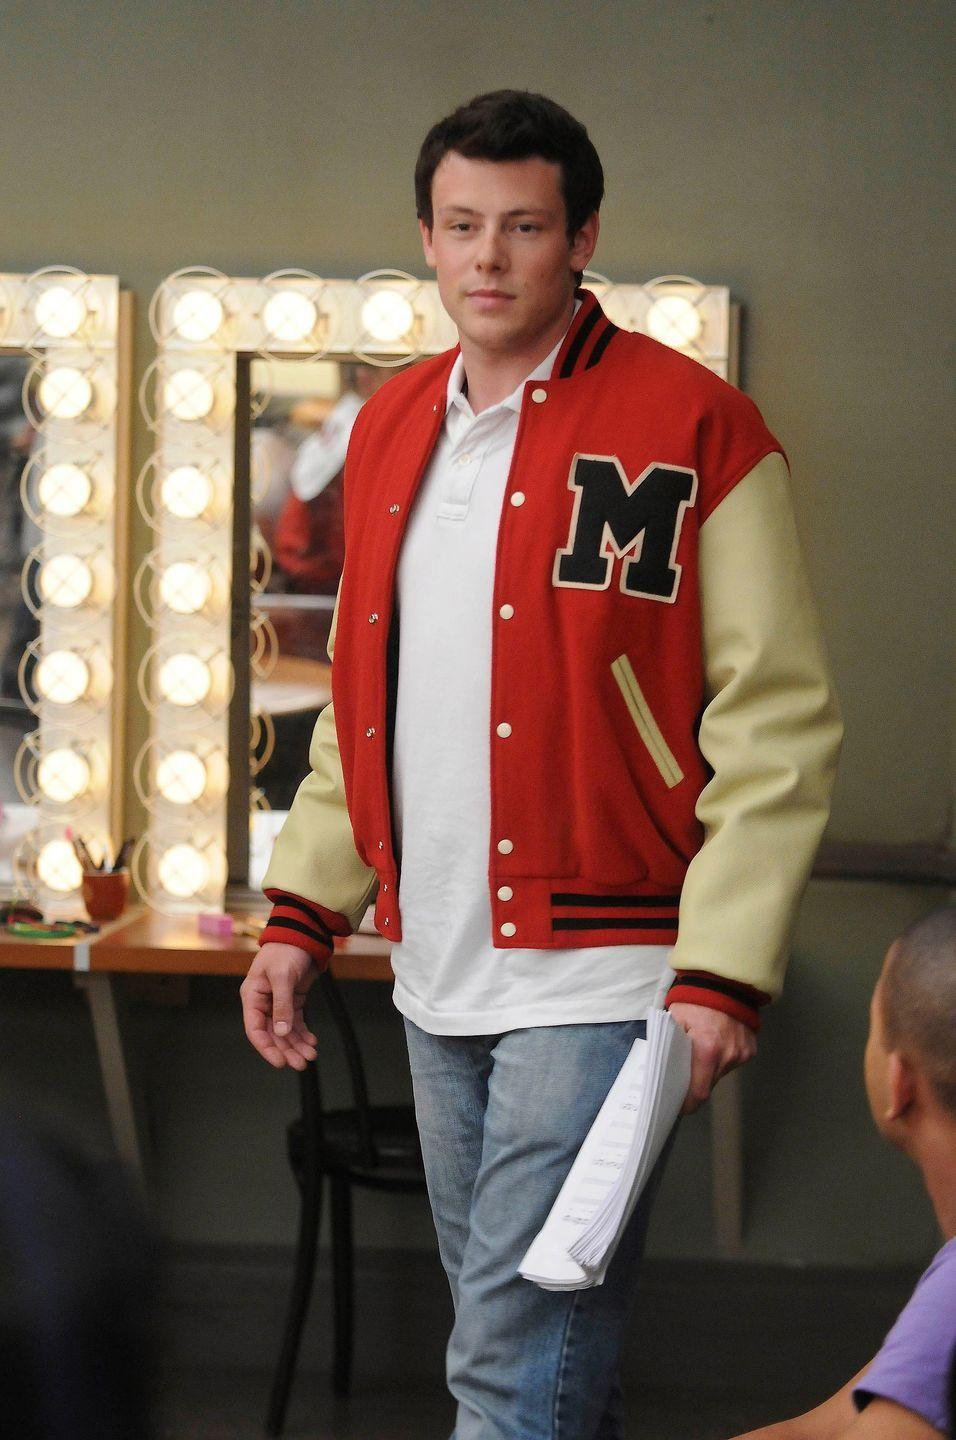 <p><strong>TV Show:</strong> <em>Glee</em></p><p>When <em>Glee </em>first premiered in 2009, Finn Hudson was the high school quarterback who found love singing in glee club. While filming the first season, Monteith was actually 27, a decade older than his character. </p>